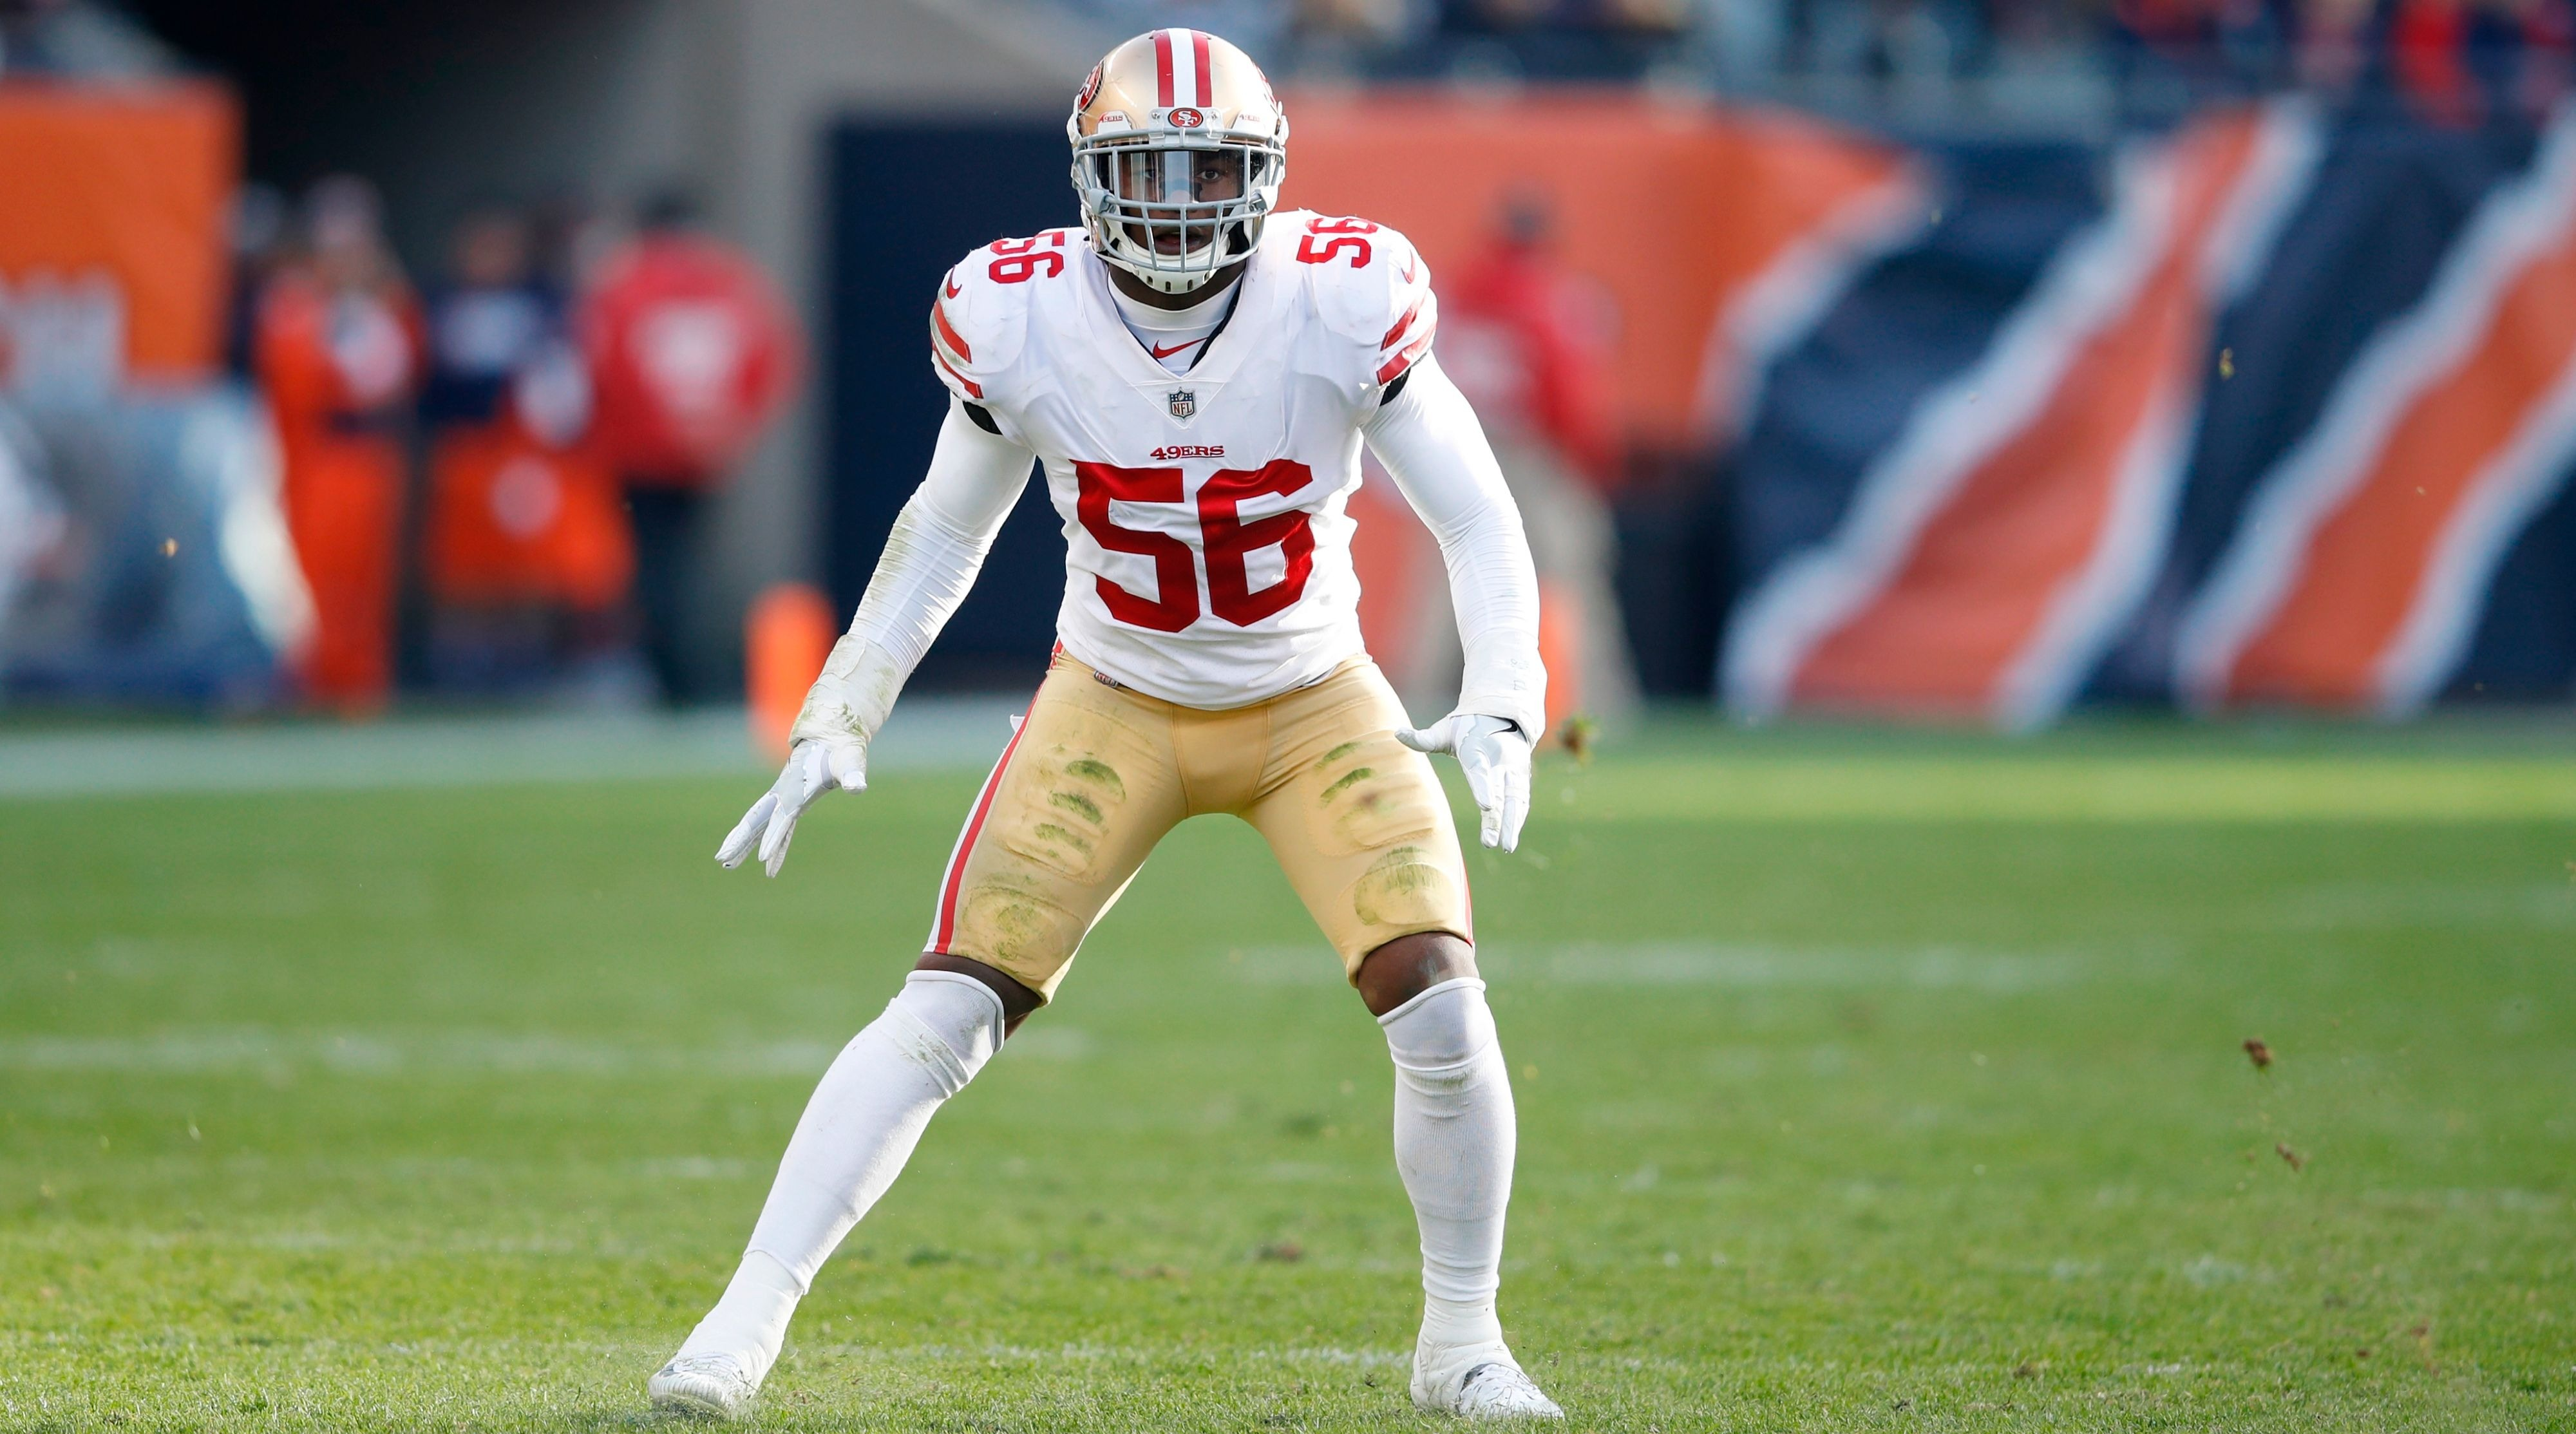 Reuben Foster 2017 NFL Draft profile including player stats videos combine results and expert analysis